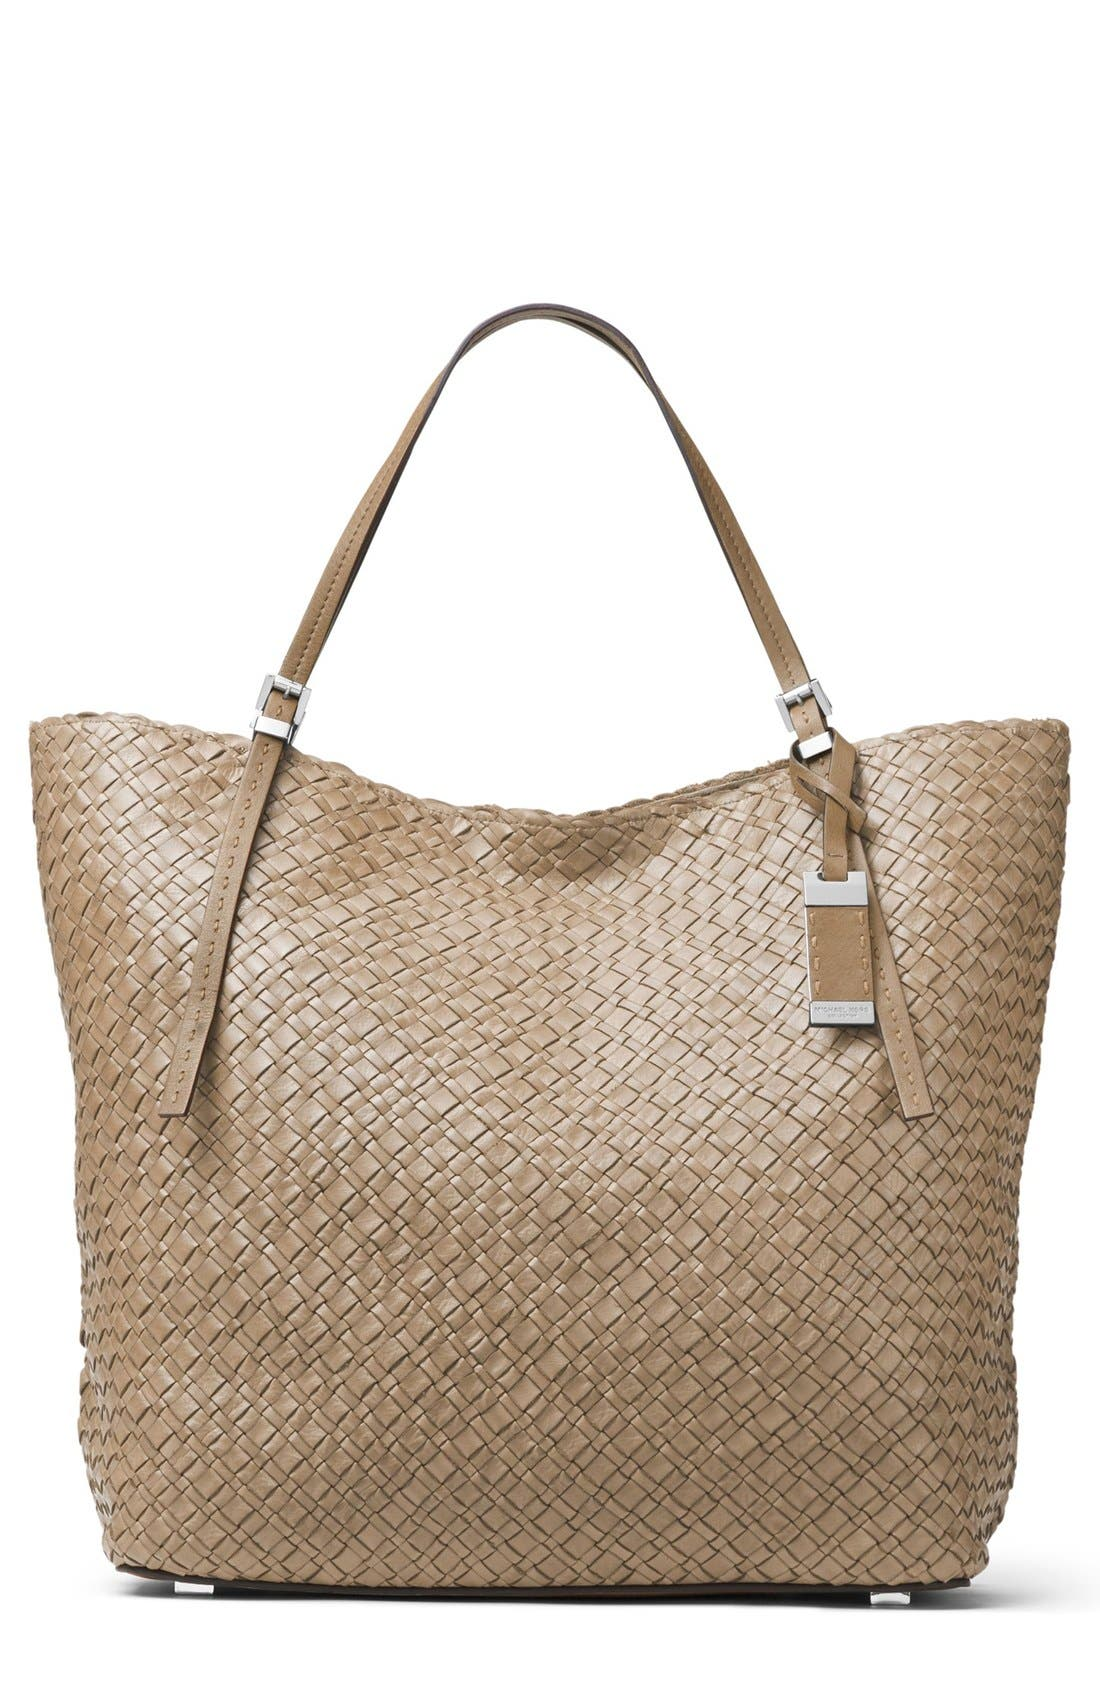 Alternate Image 1 Selected - Michael Kors Large Hutton Woven Leather Tote